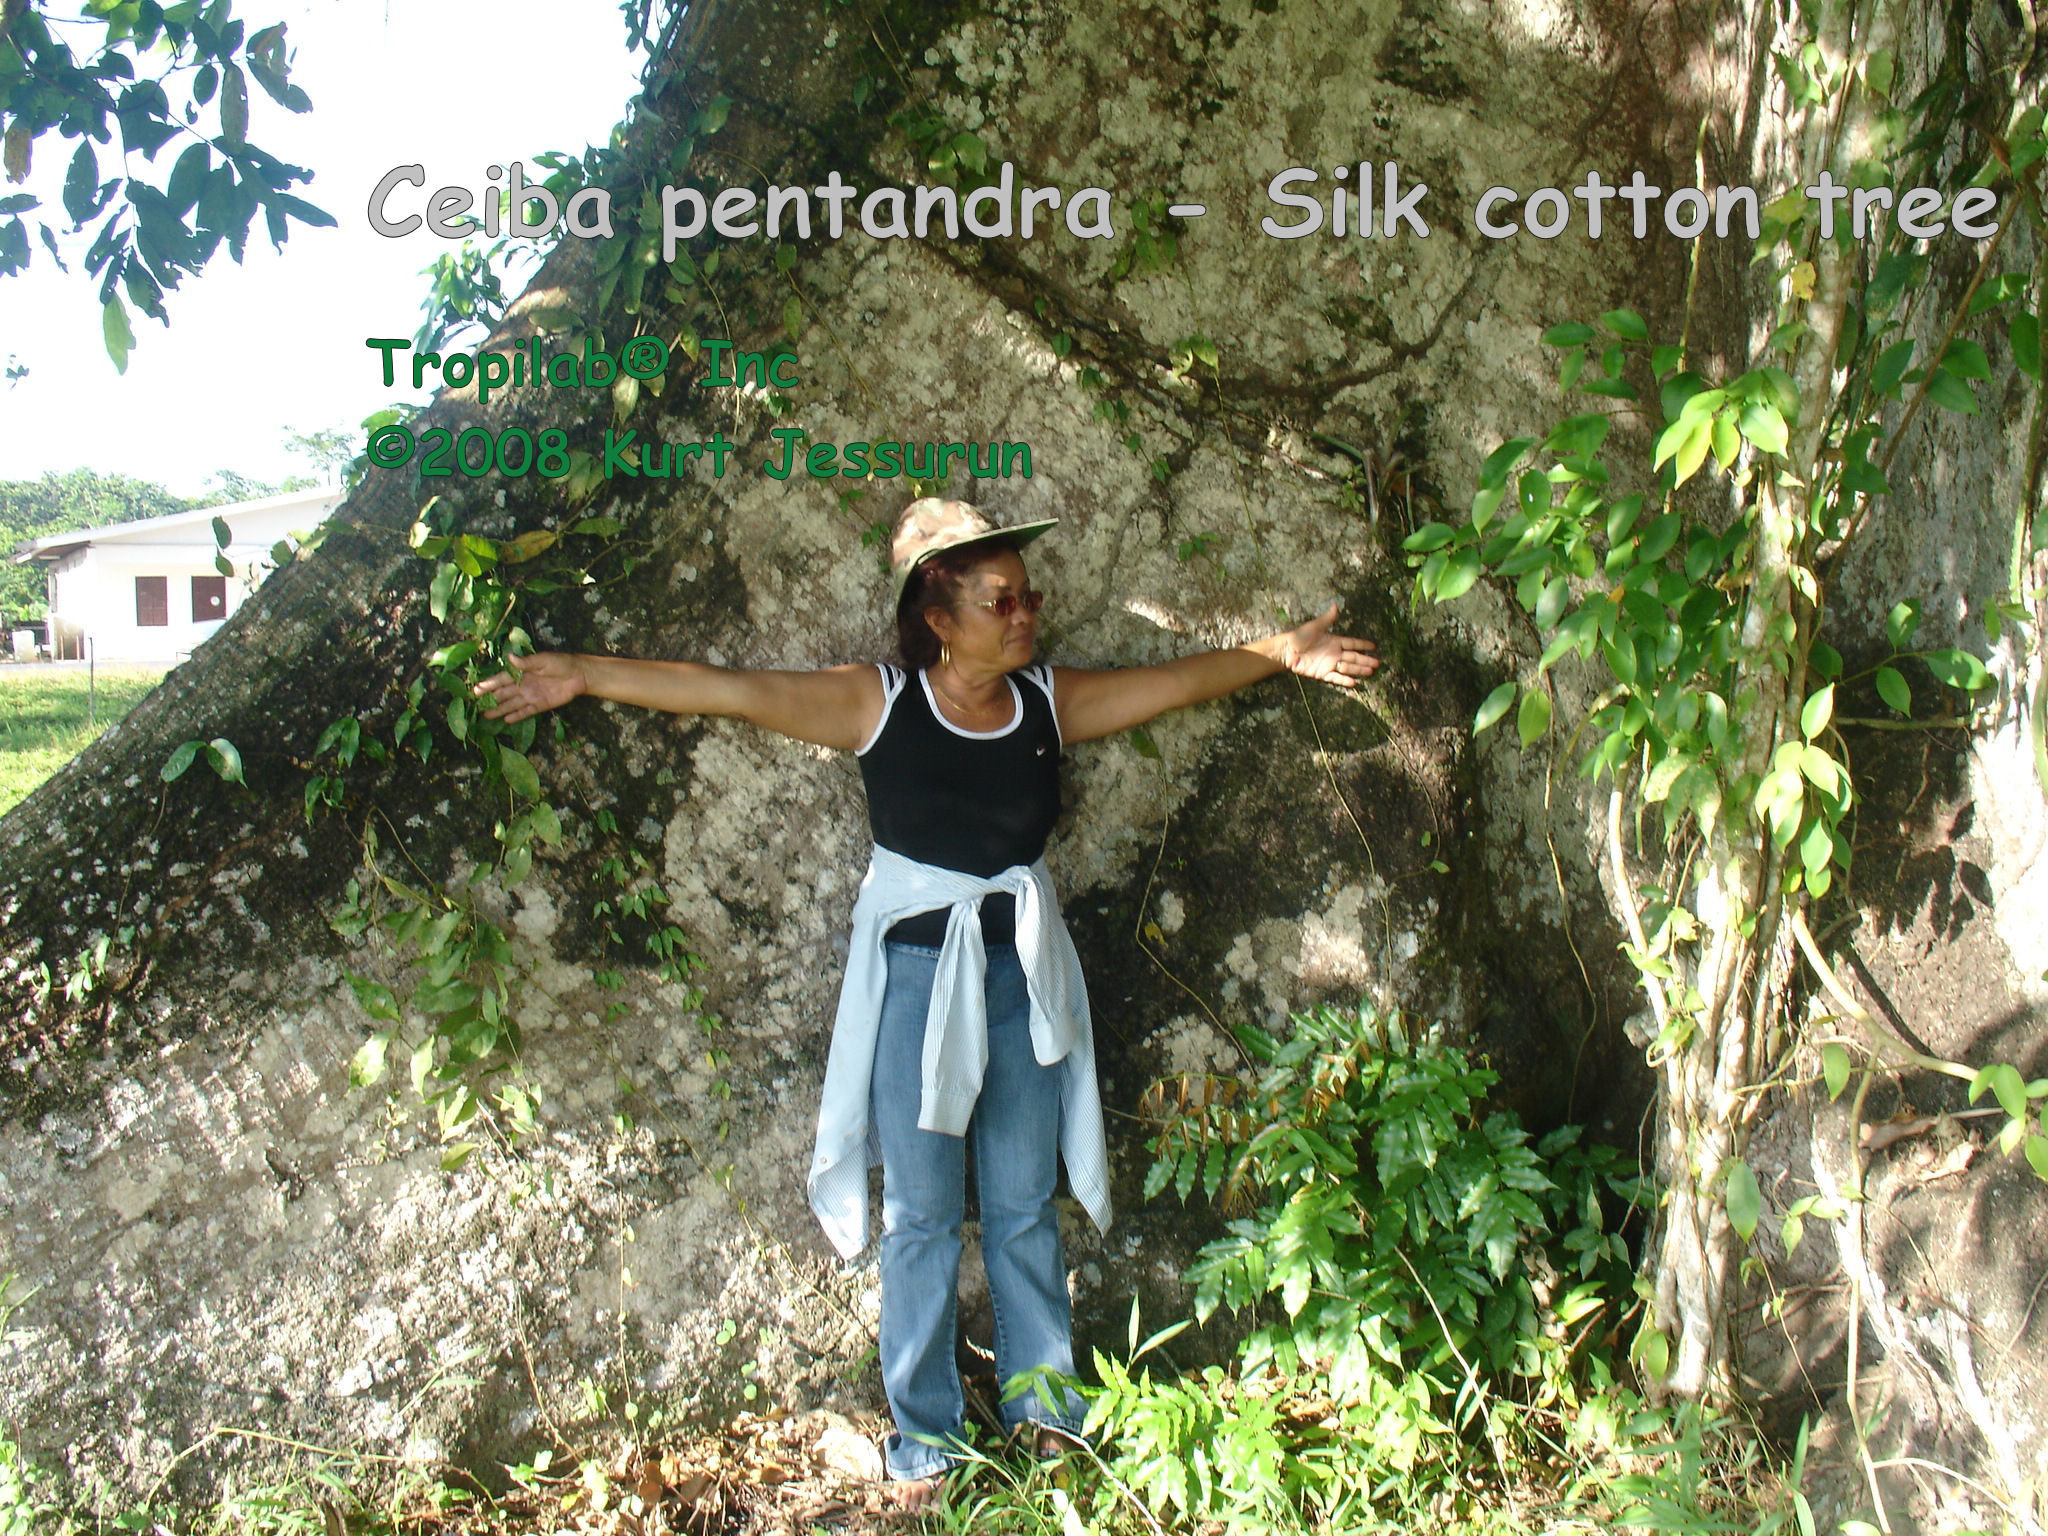 Ceiba pentandra - Silk Cotton tree